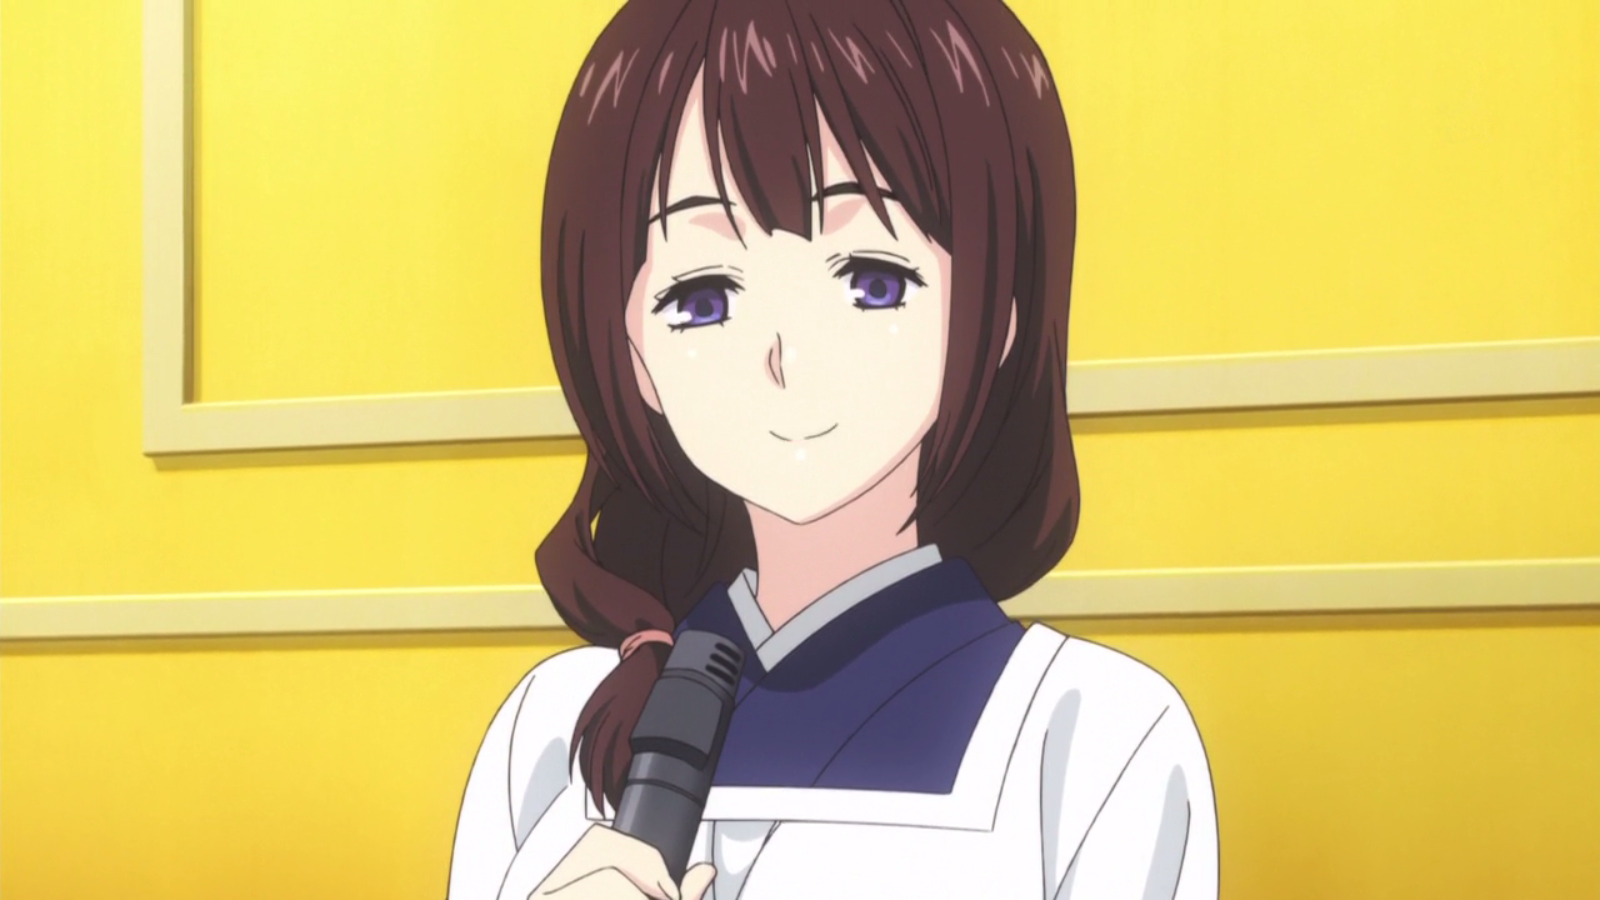 Hinako Inui | Shokugeki no Soma Wiki | FANDOM powered by Wikia